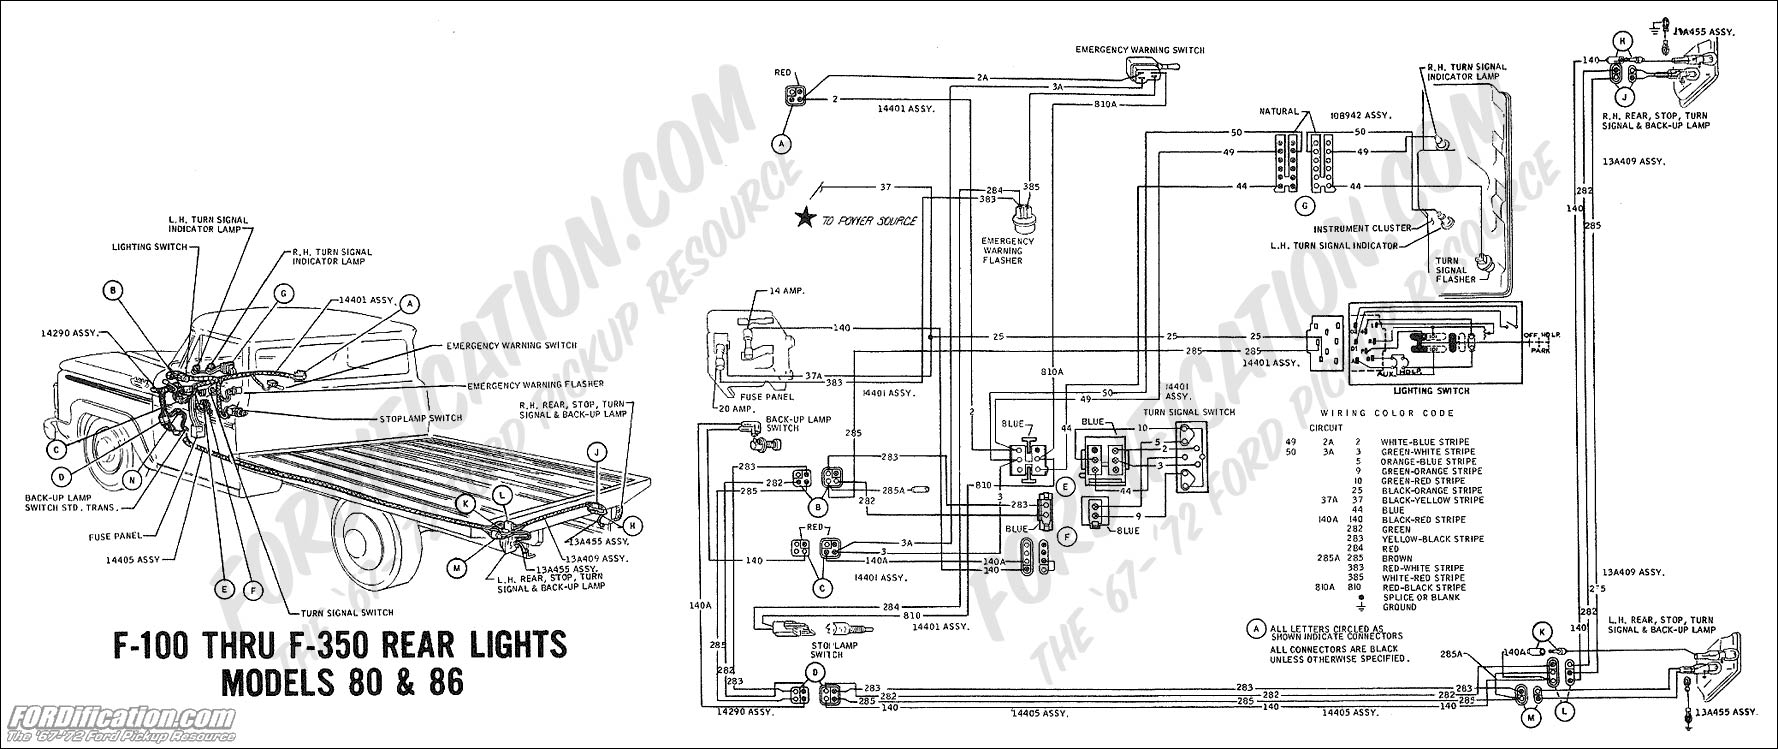 Ford Truck Technical Drawings And Schematics Section H Wiring 1973 Vw Beetle Tail Light Diagram Taillight 1969 F 100 Thru 350 Rear Lights Models 80 86